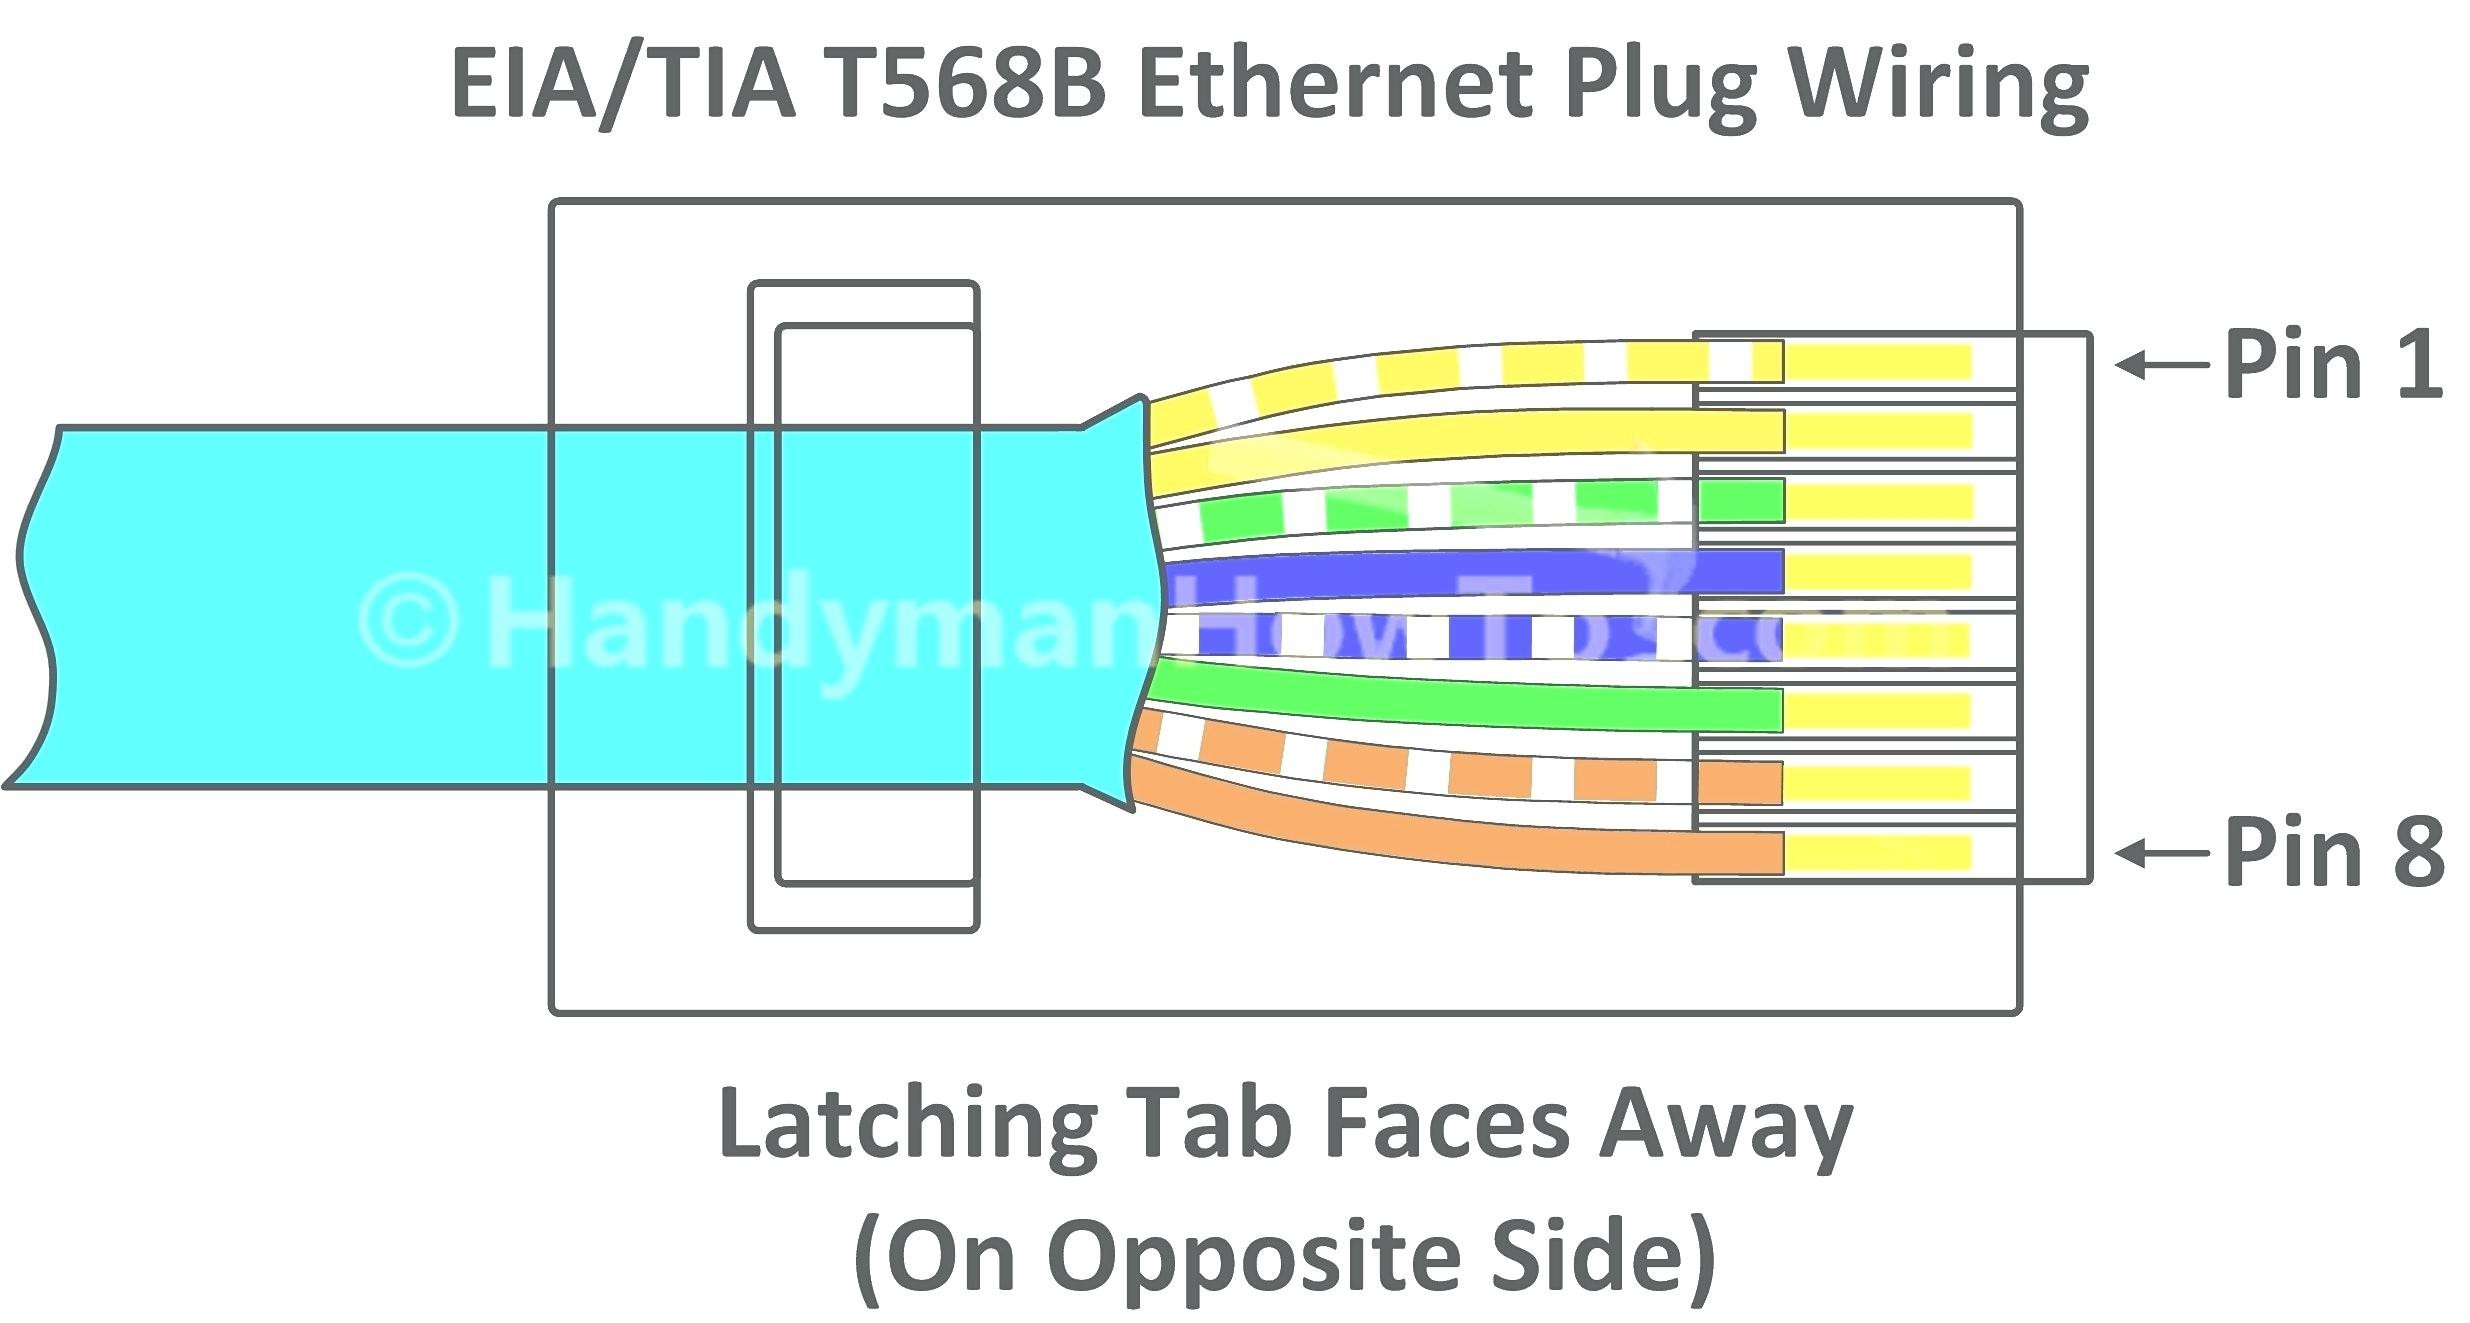 t568b wiring diagram Collection-T568b Wiring Diagram Best Inspirational T568b Wiring Diagram Diagram 2-o